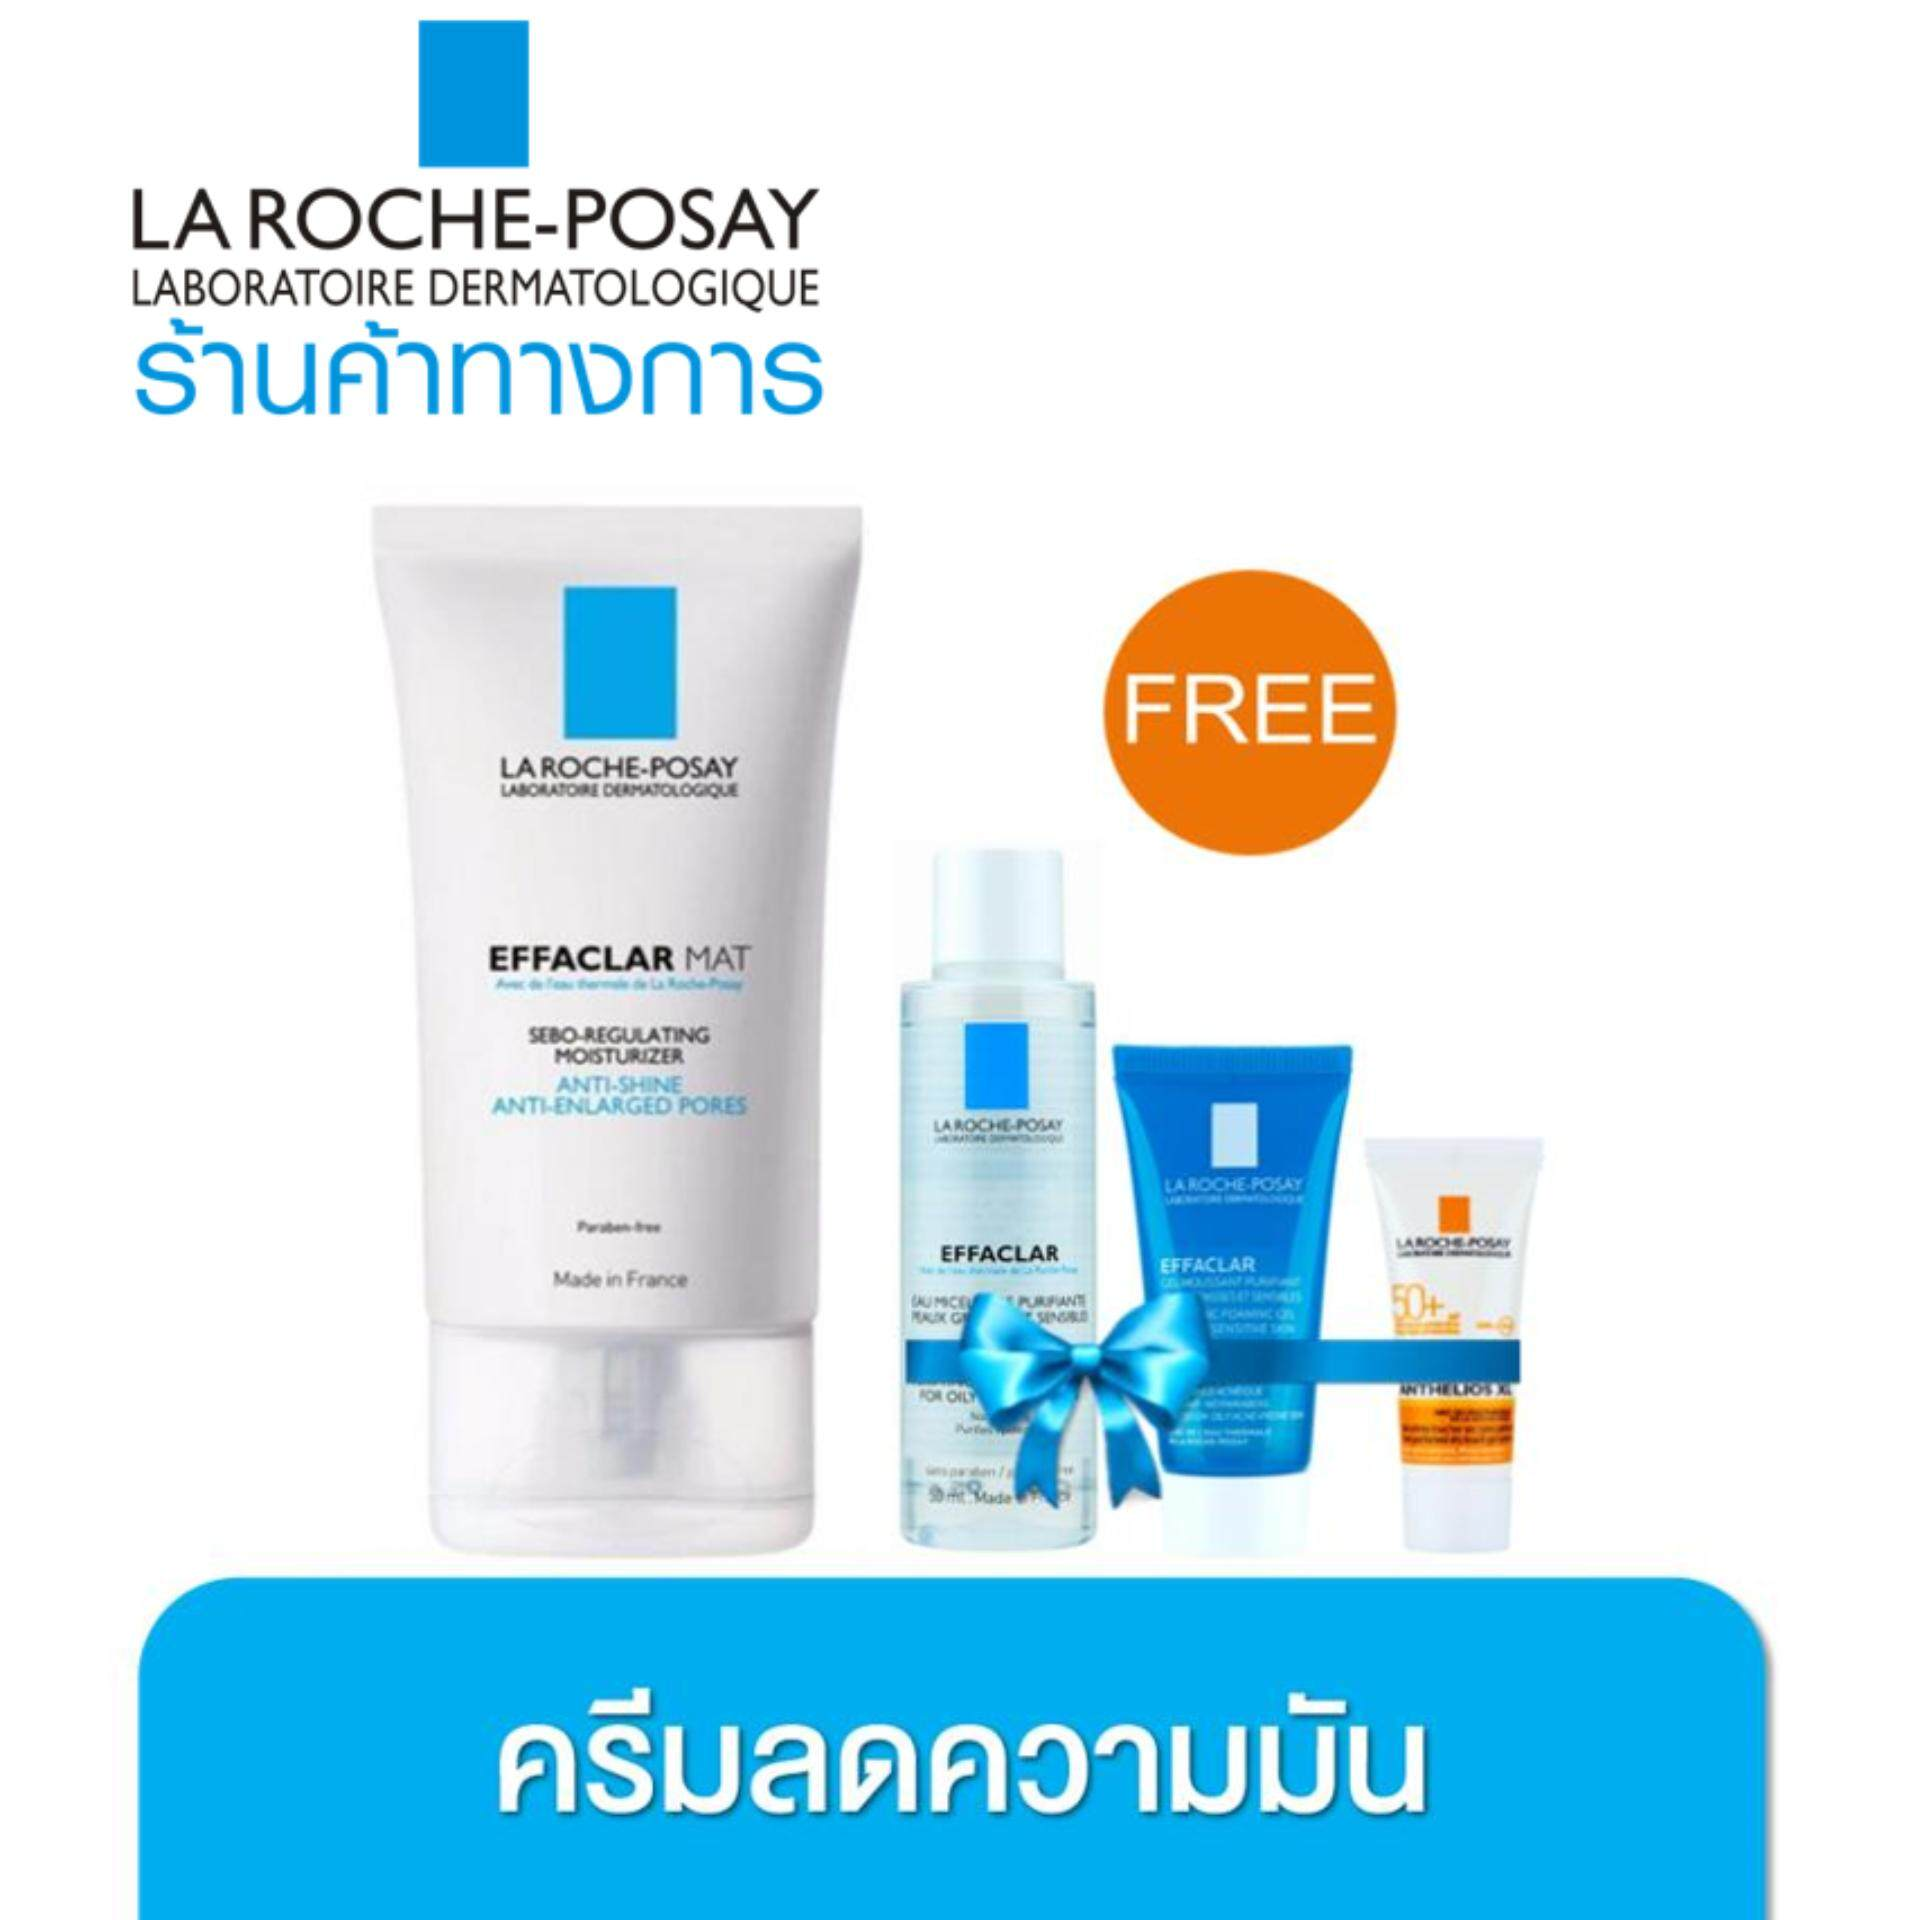 แนะนำ [ฟรี 3 ชิ้น] La Roche Posay Effaclar MAT ลา โรช-โพเซย์ เอฟฟาคลาร์ แมท ครีมลดปัญหาสิว ลดความัน กระชับรูขุมขน 40 มล.[ฟรี!คลีนซิ่งน้ำแร่สำหรับผิวมัน 50 มล., เอฟฟาคลาร์ เจลล้างหน้า 15 มล. 1 ชิ้น และ แอนเทลิโอส ดรายทัช 3 มล. 1 ชิ้น] (สำหรับดูแลสิวผิวมัน) ใช้ได้ผลจริง